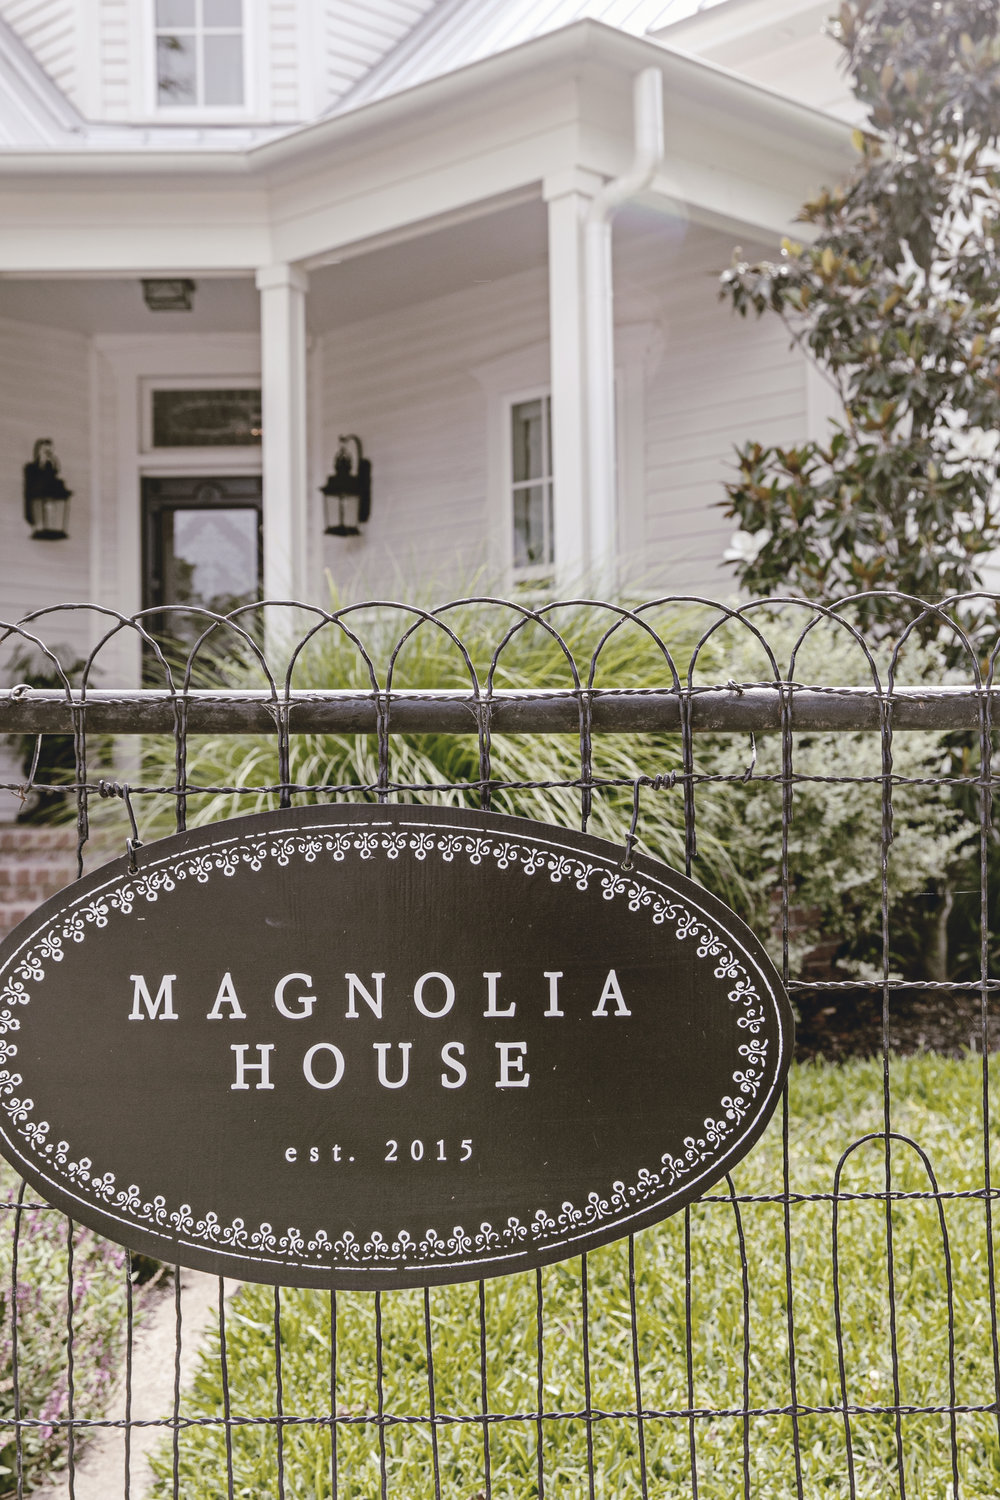 Magnolia House / bed and breakfast / heirloomed travel